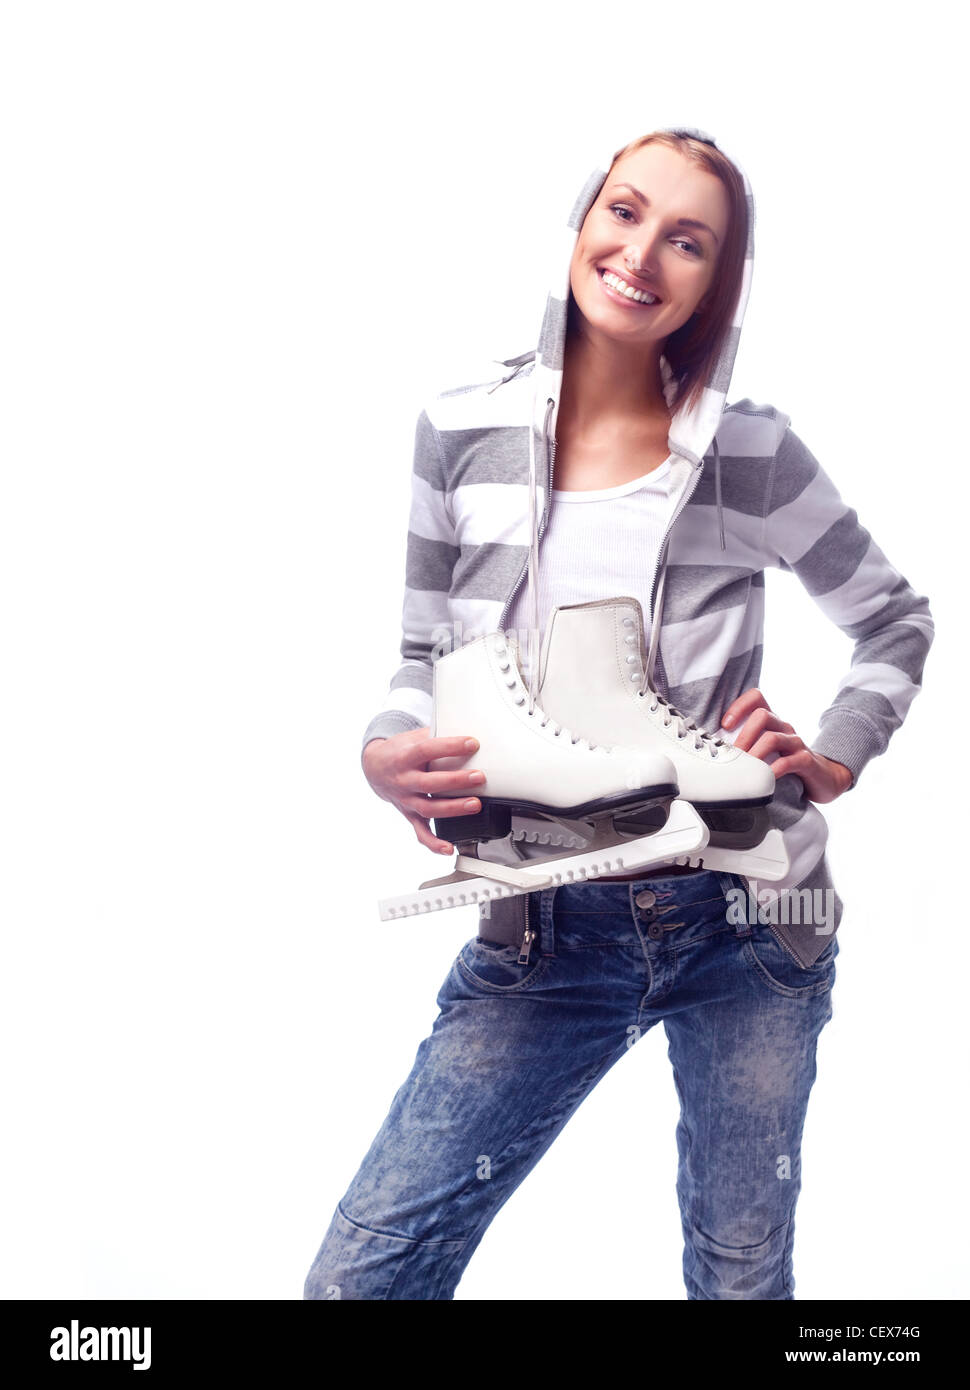 young woman going to ice skate - Stock Image